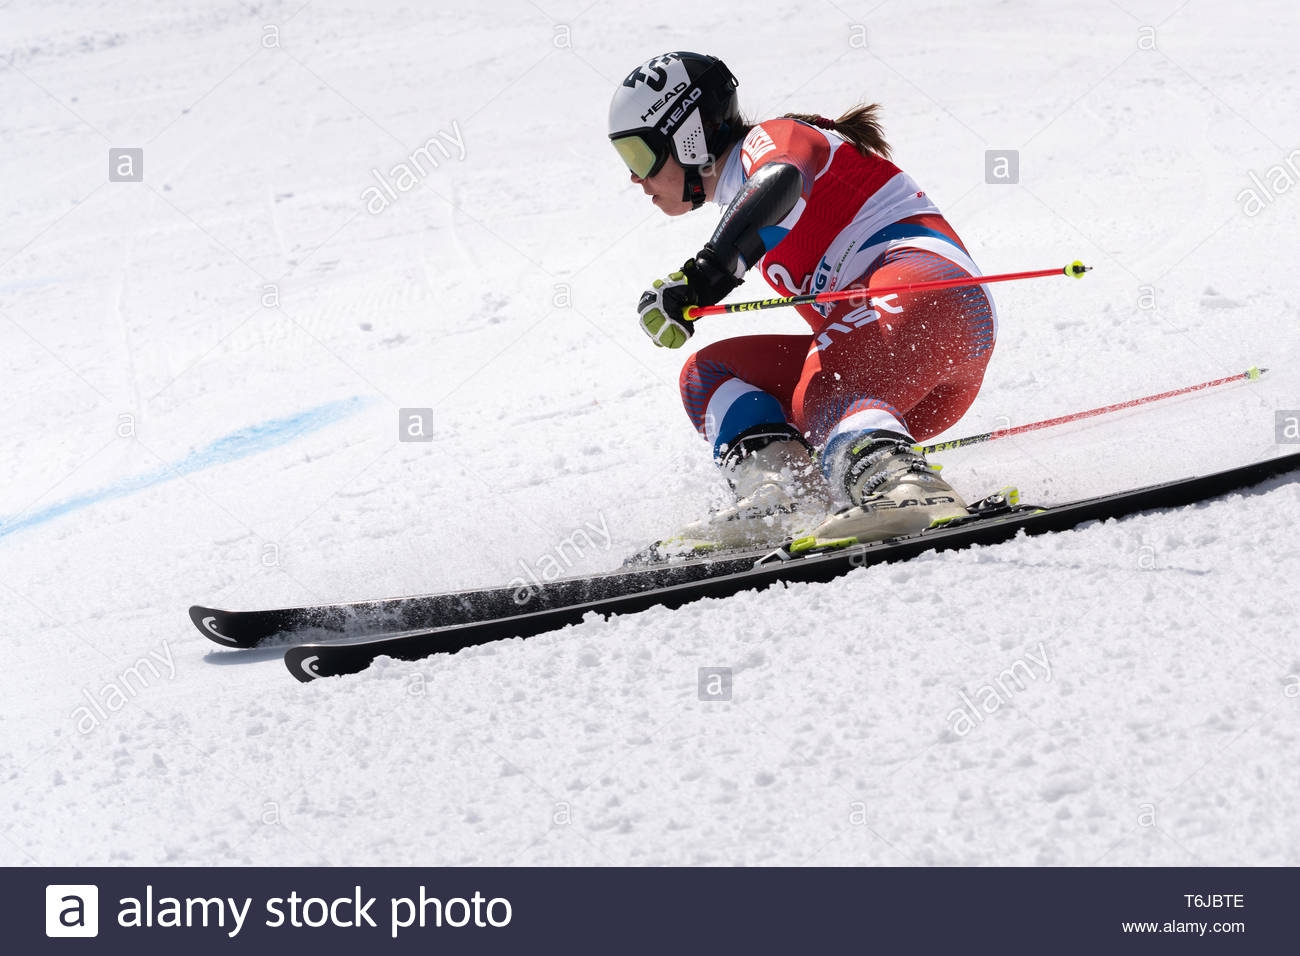 KAMCHATKA PENINSULA, RUSSIAN FEDERATION - APRIL 1, 2019: Mountain skier Pleshkova Julia (Kamchatka Peninsula) skiing down snowy mountain slope. Russia - Stock Image